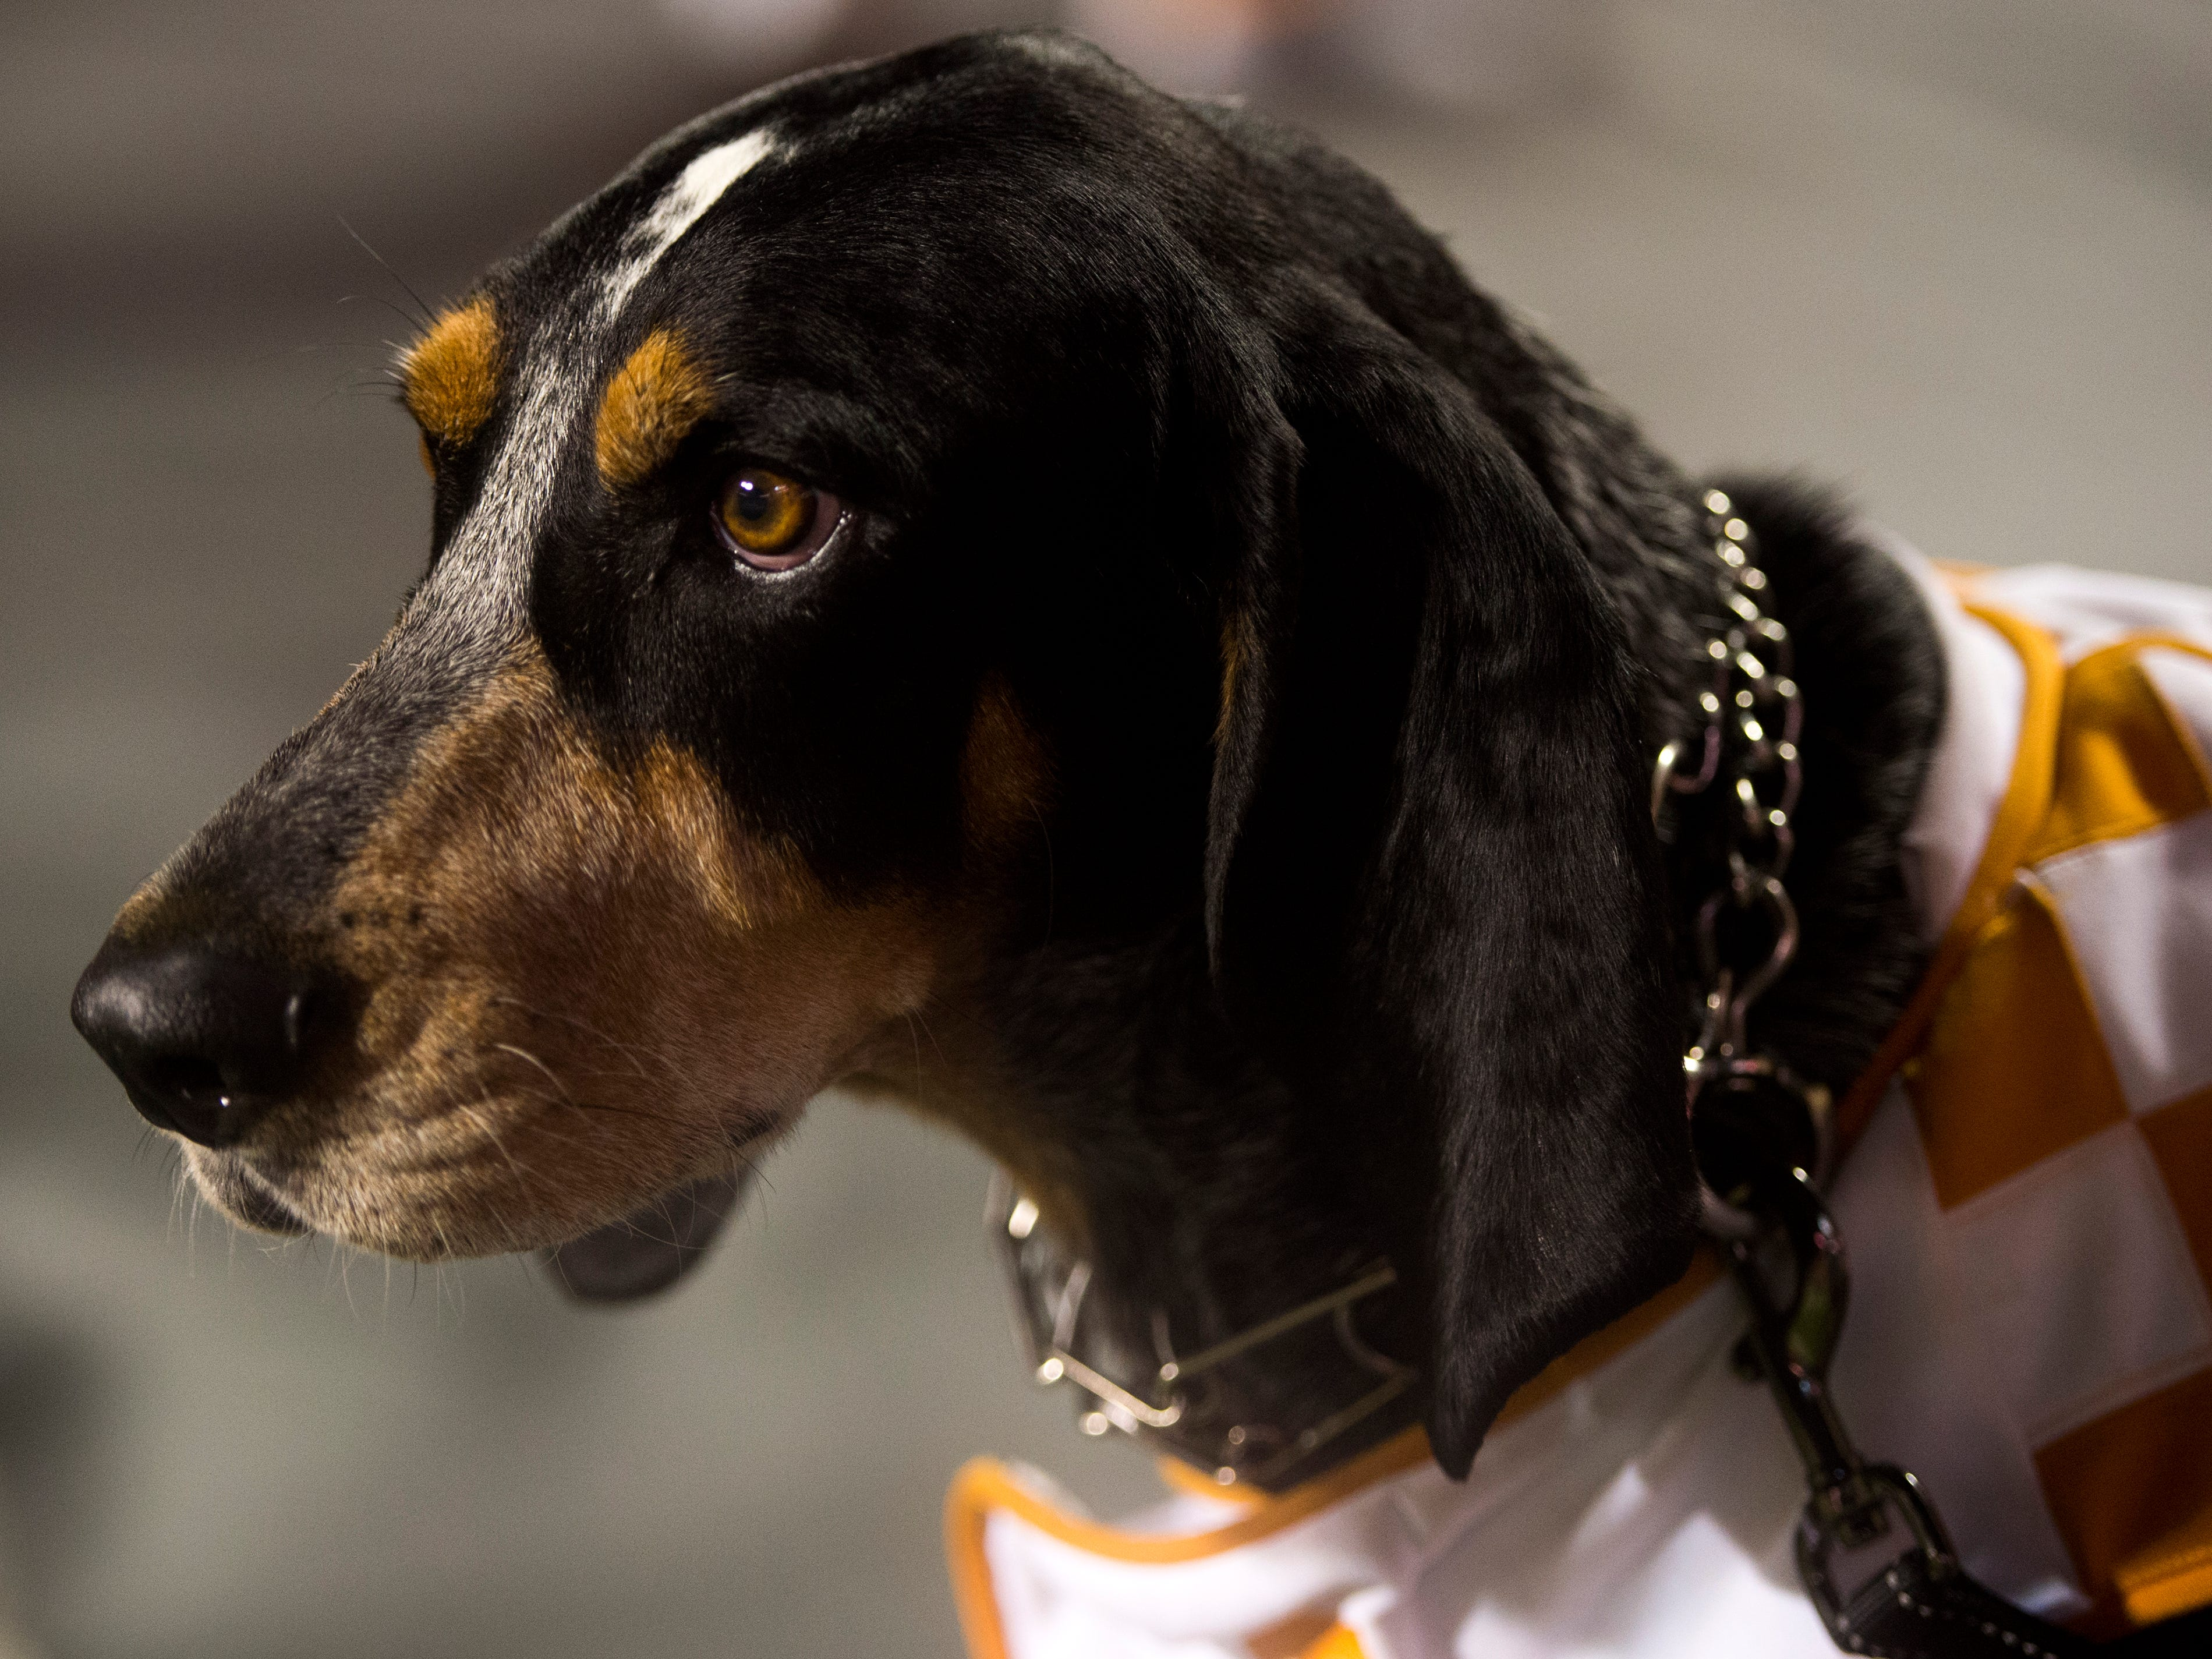 Smokey during the Tennessee Volunteers' game against Florida in Neyland Stadium on Saturday, Sept. 22, 2018.